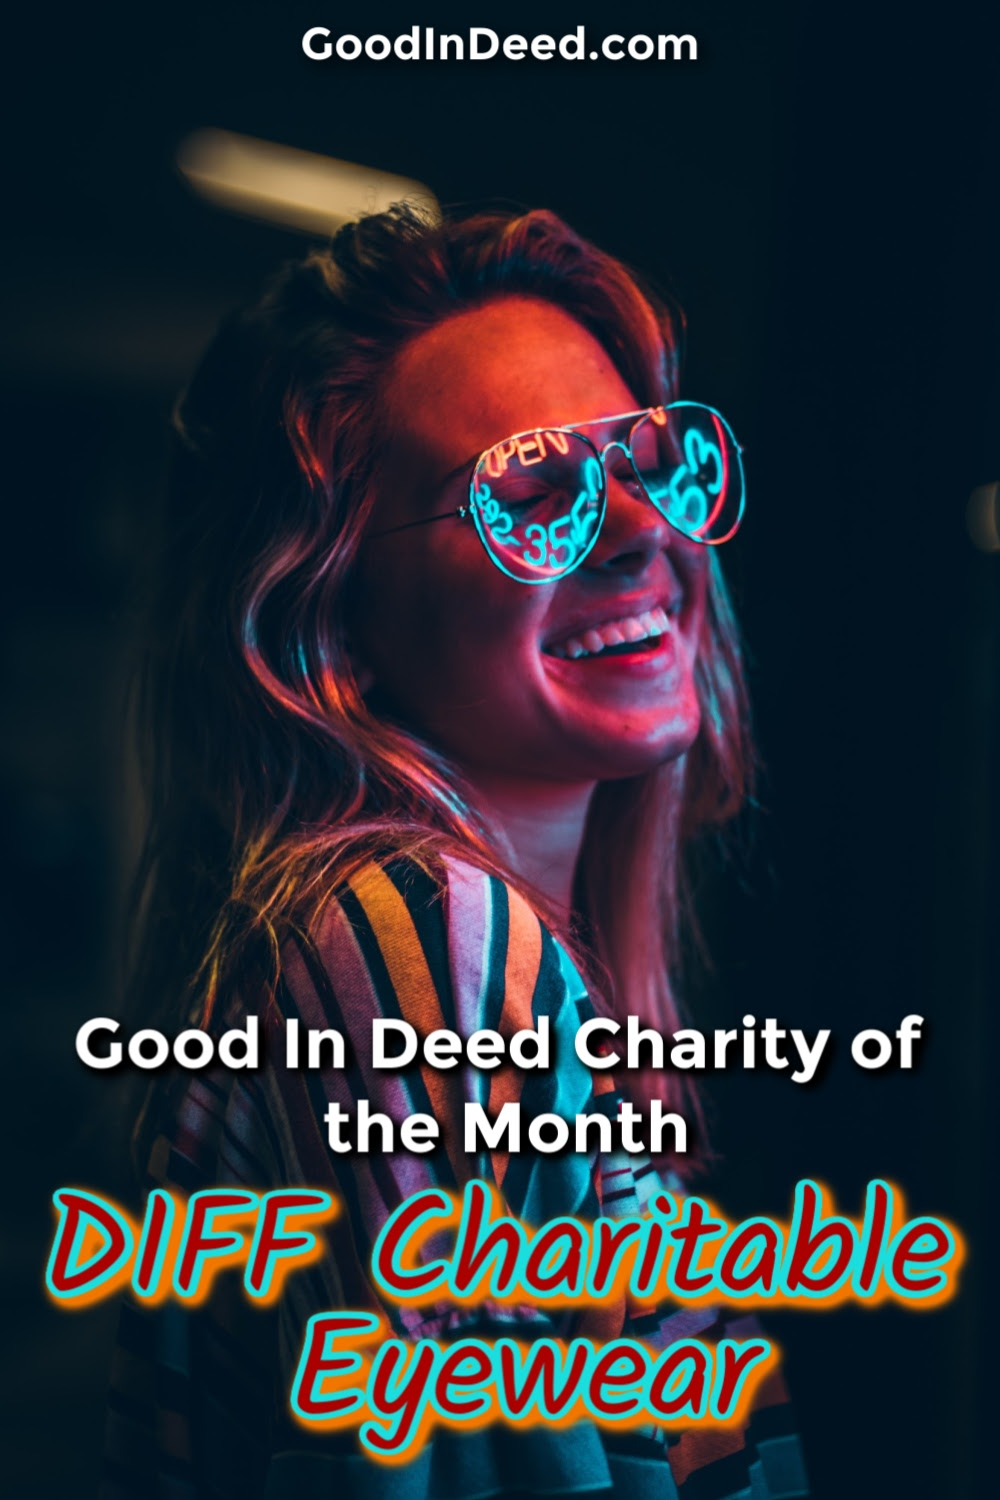 DIFF Charitable Eyewear is taking the need people have for glasses and turning it into a charitable opportunity that we all can get involved with.